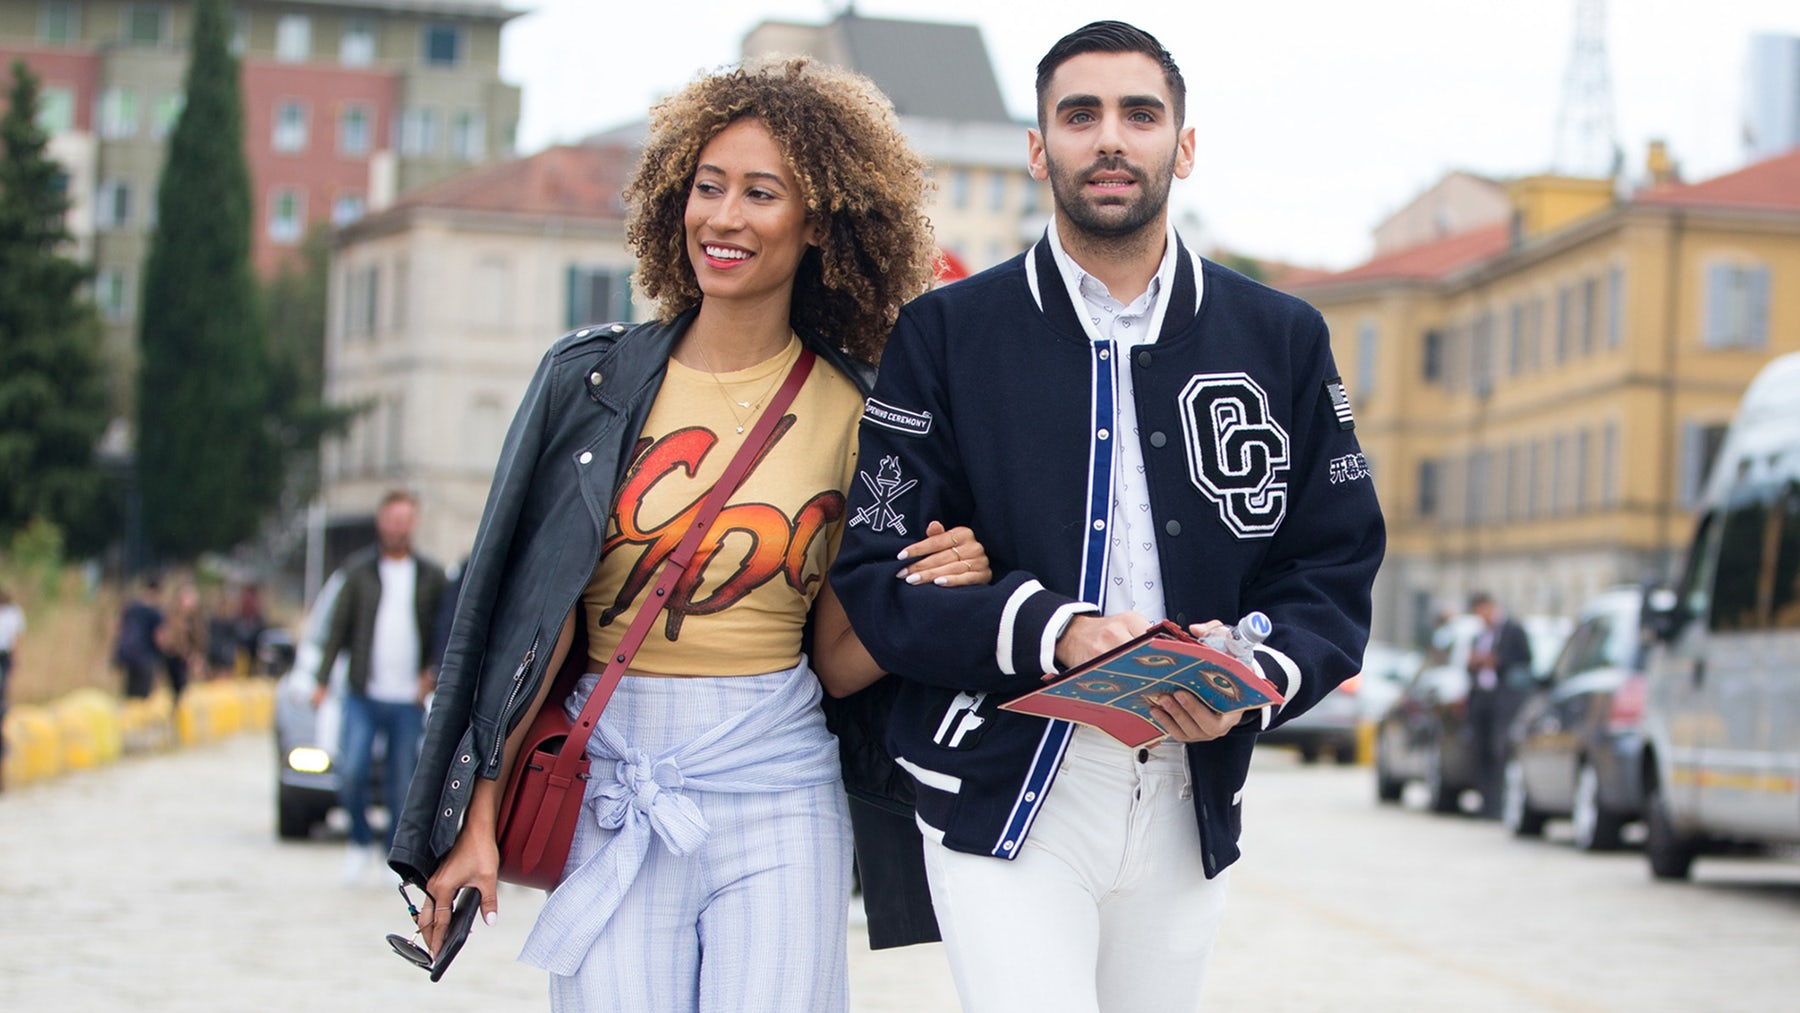 Elaine Welteroth, editor-in-chief of Teen Vogue, and Phillip Picardi, digital editorial director of Teen Vogue | Source: Getty